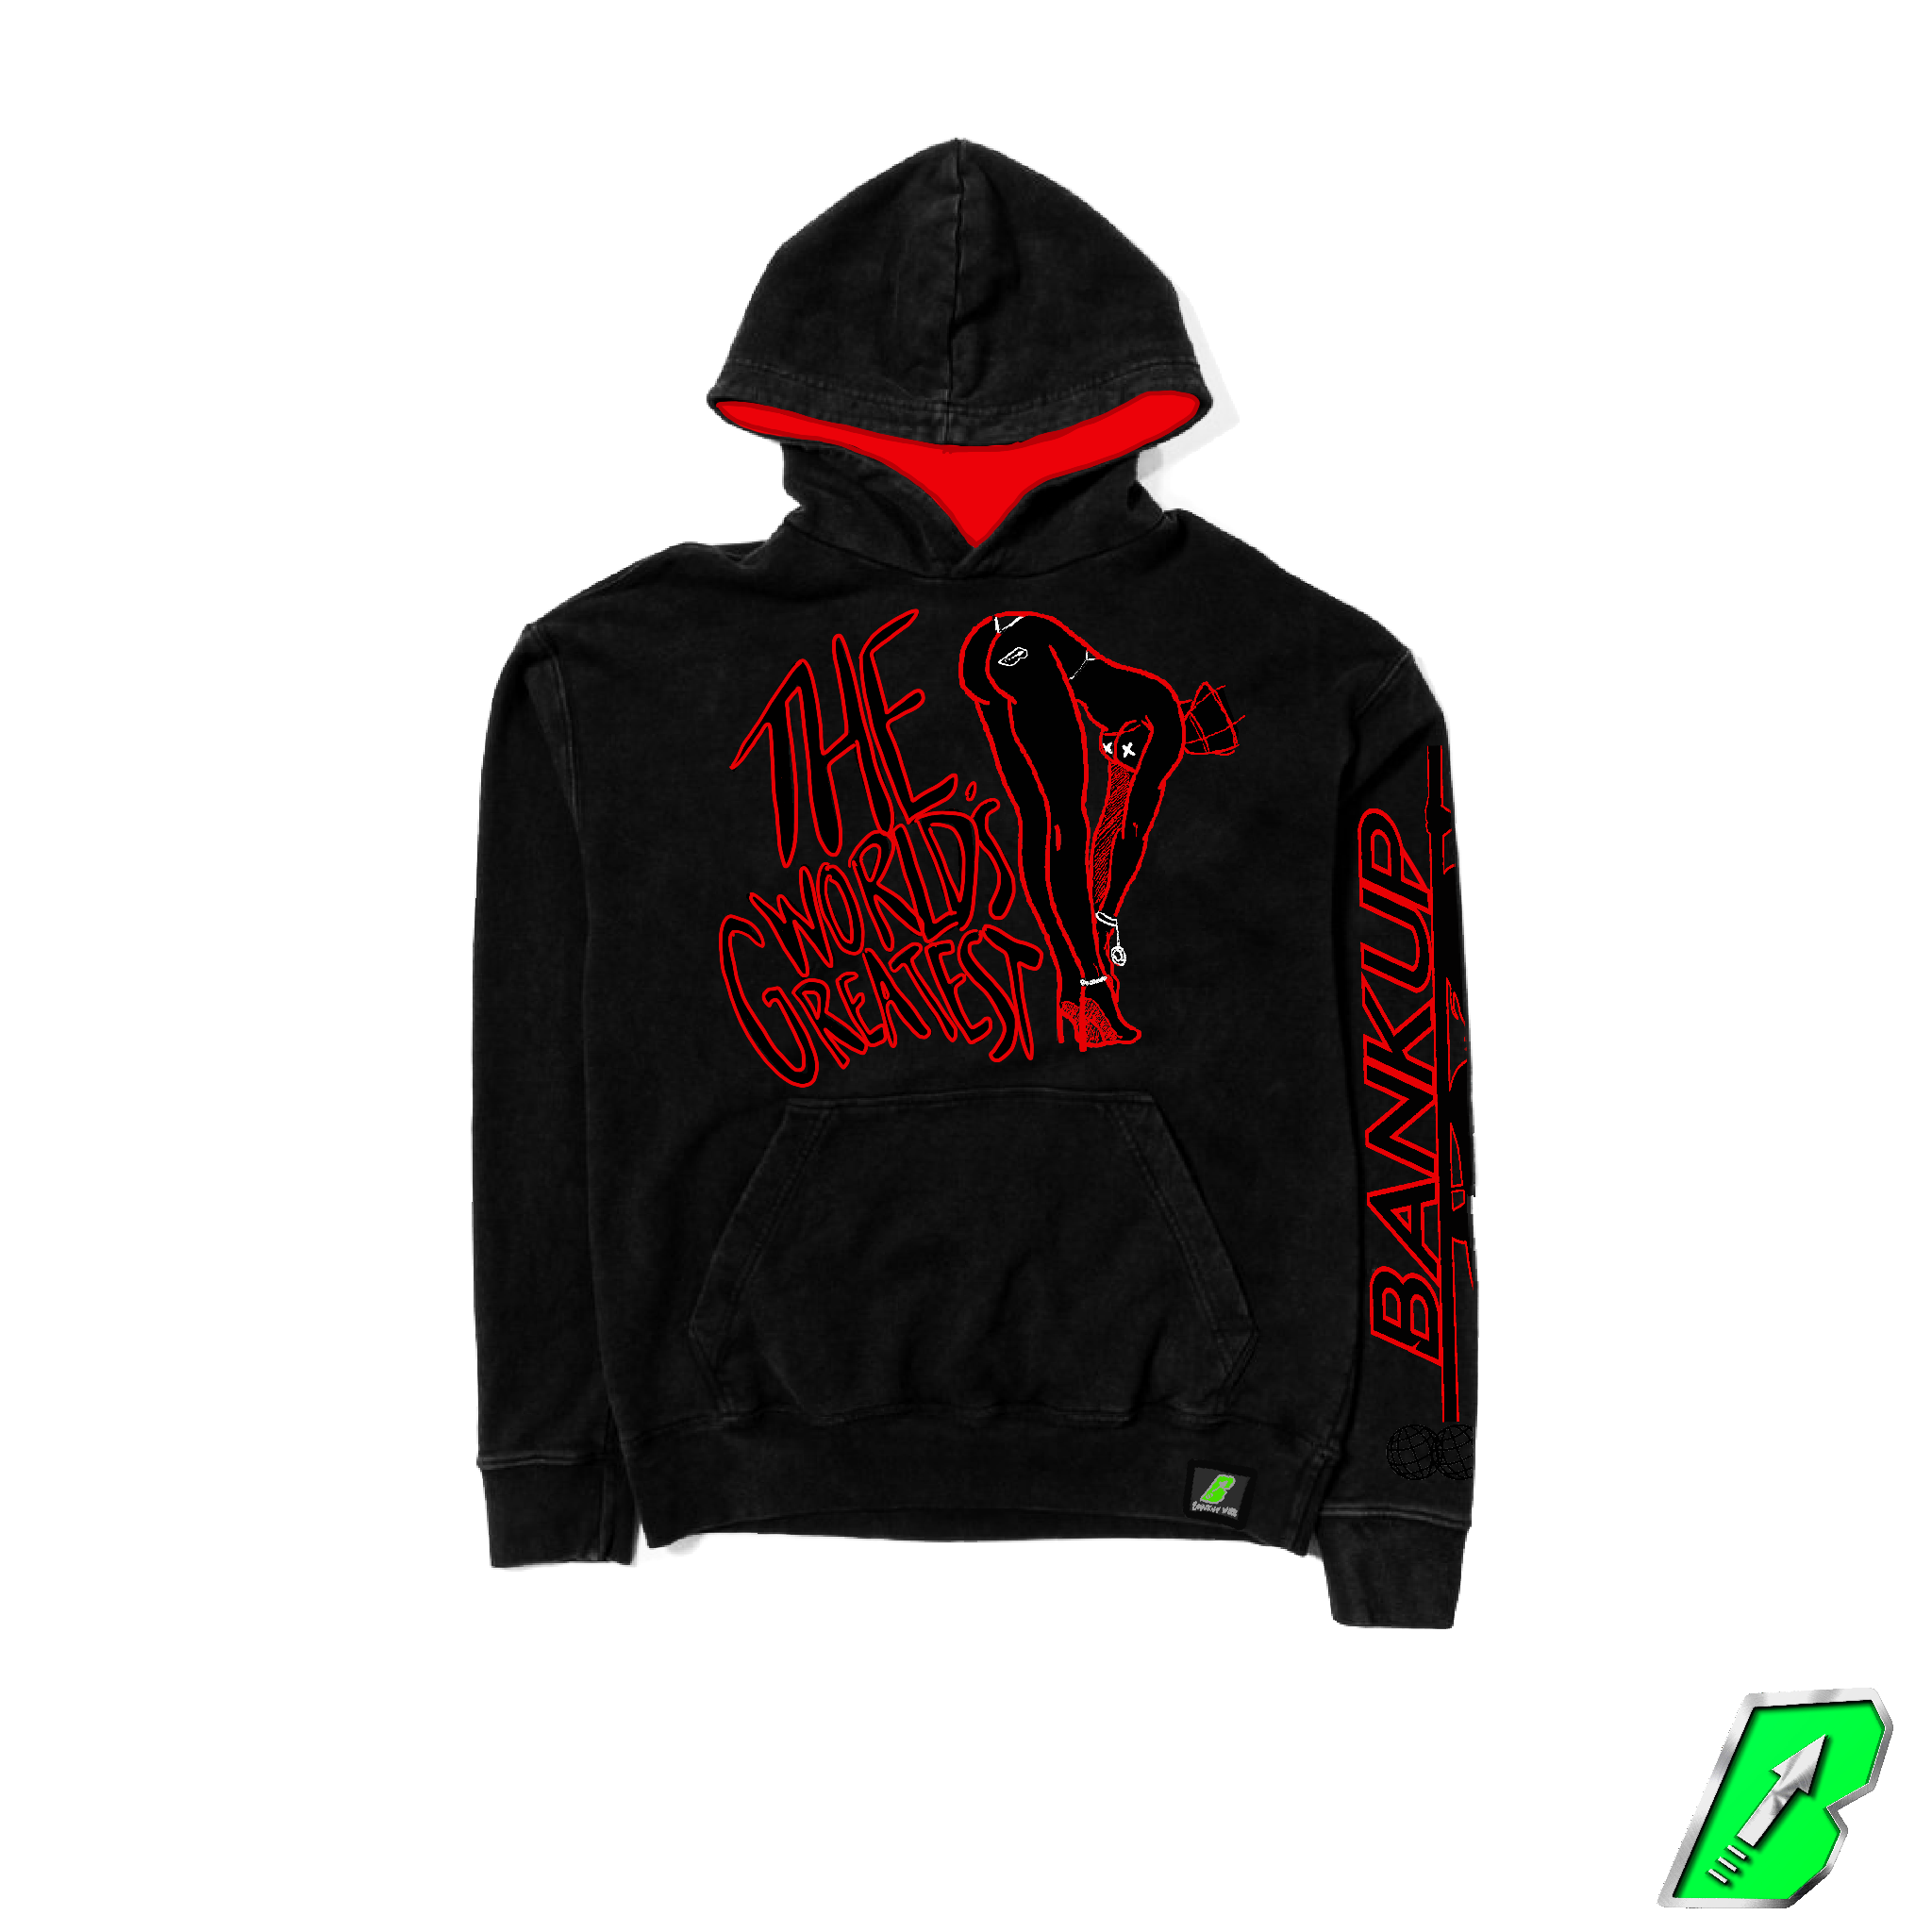 """The Worlds Greatest"" Long Sleeve Pullover Hoodie - Bankup Worldwide"